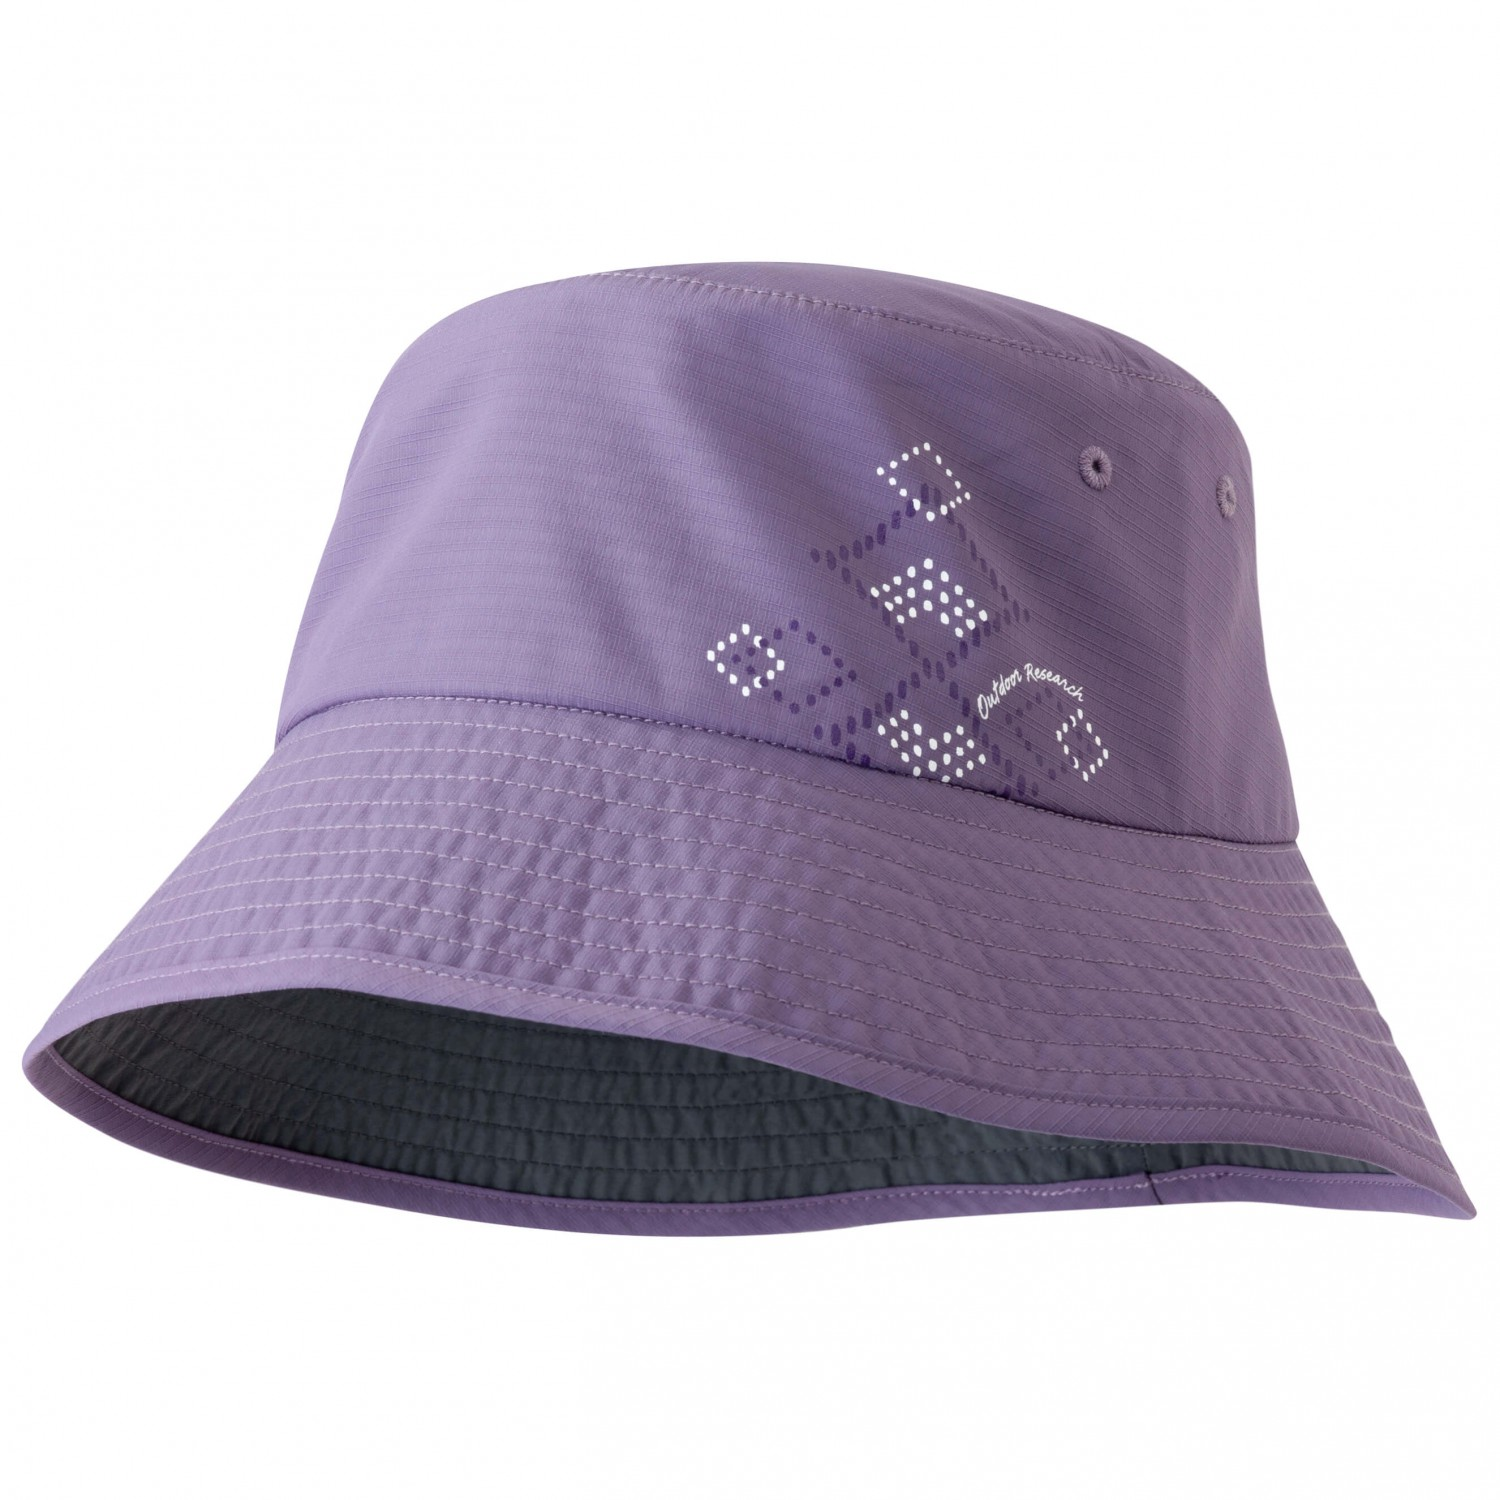 24106bc8b1b Where To Buy Bucket Hat Uk - Parchment N Lead